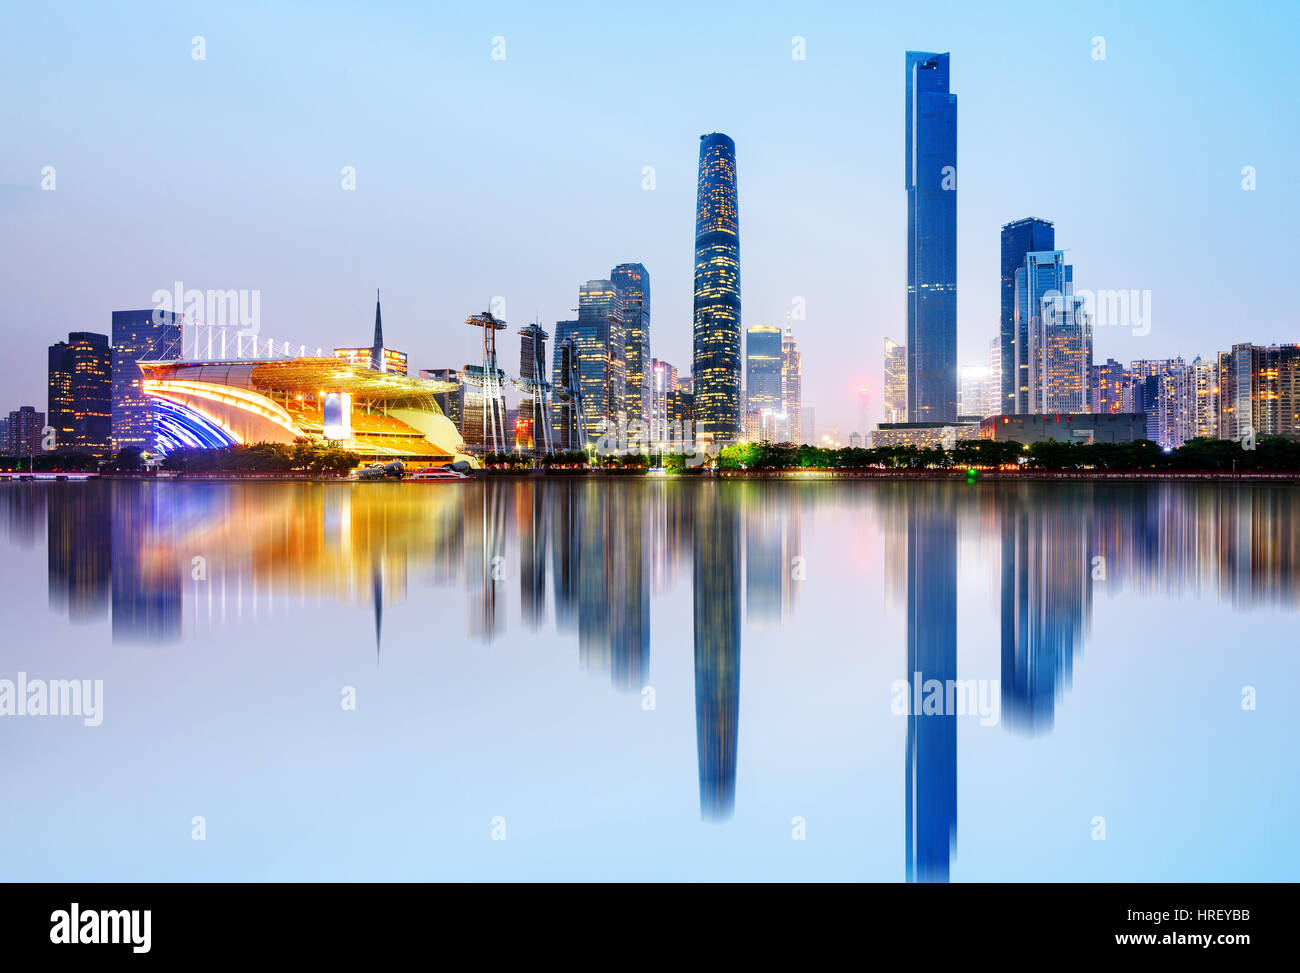 Modern urban night view, Pearl River New City, Guangzhou, China - Stock Image